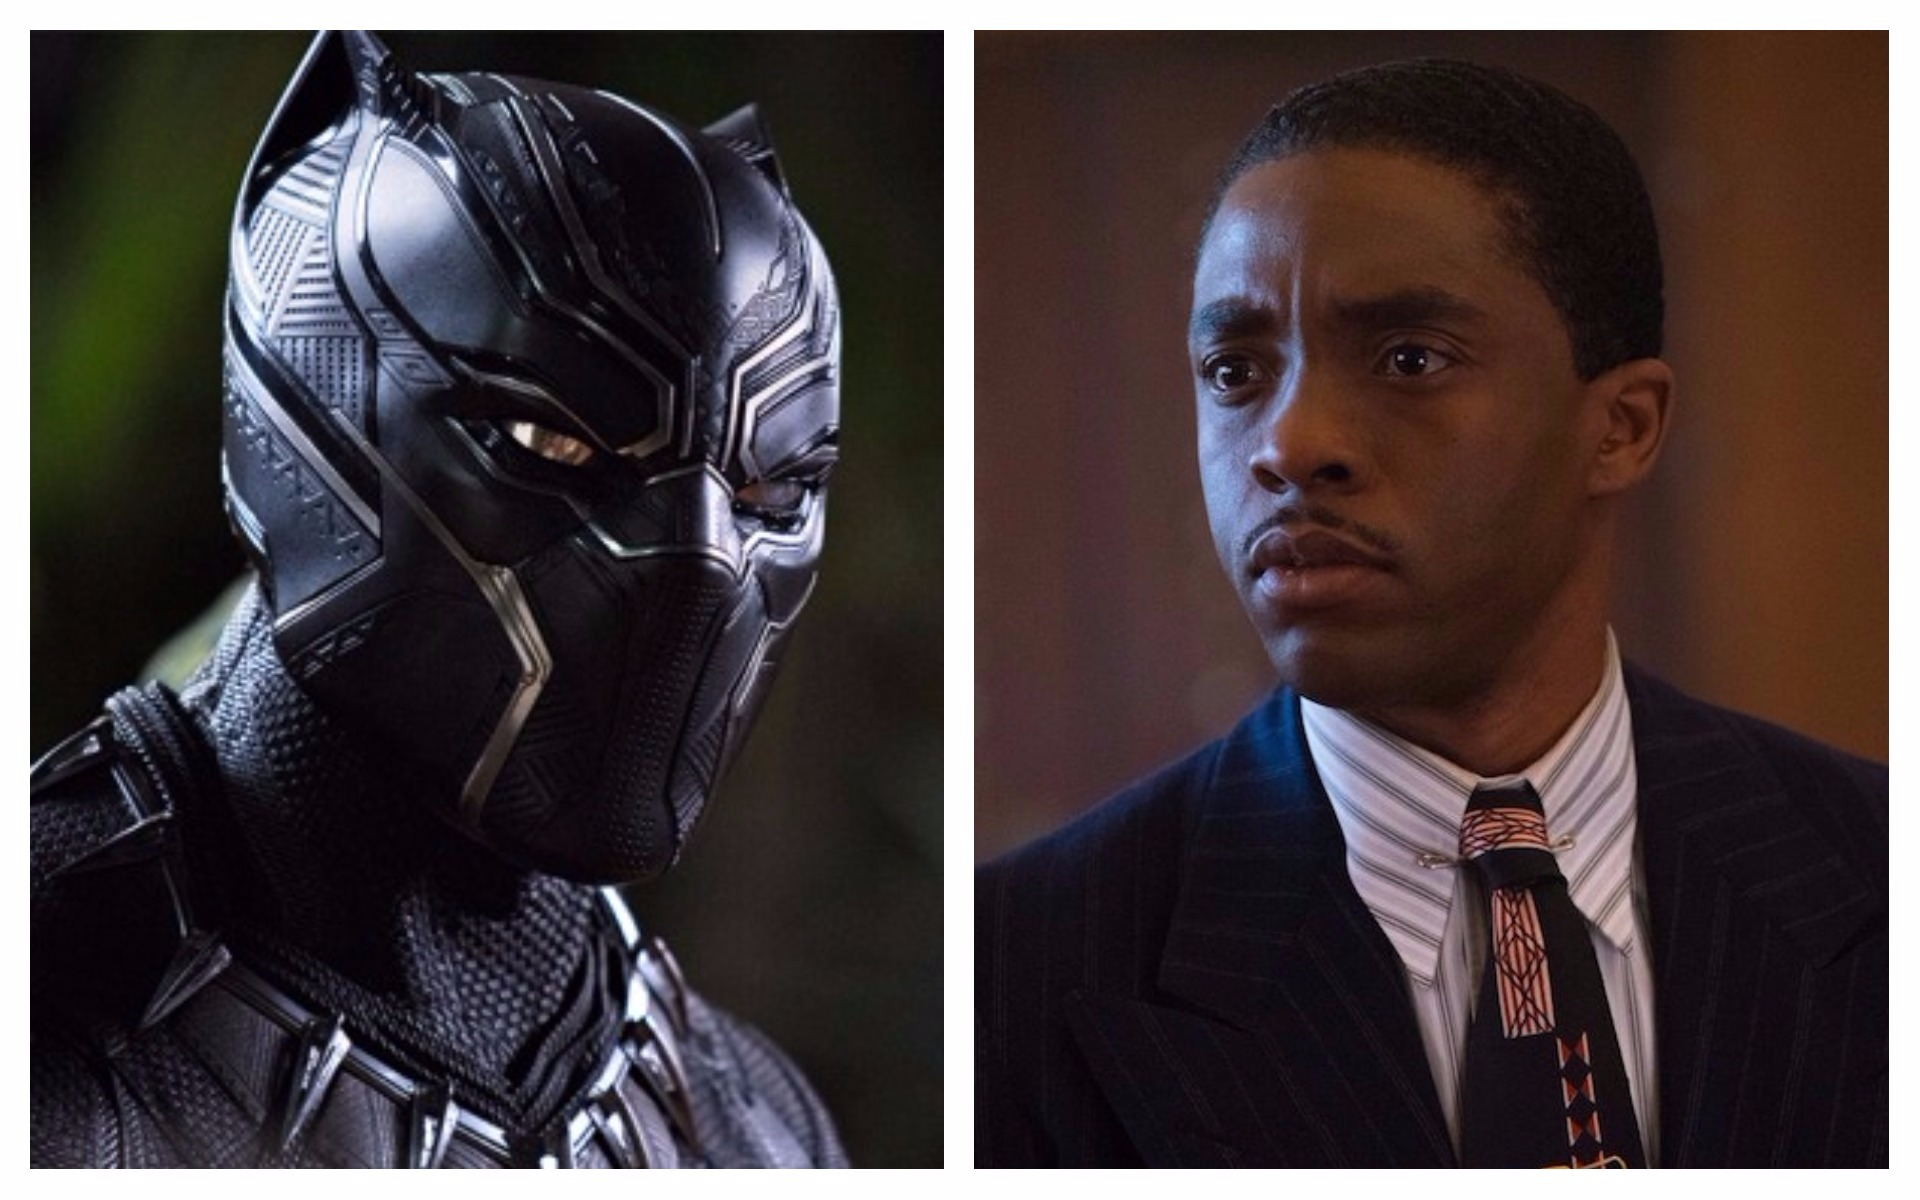 Black Panther To Marshall Chadwick Boseman S Black Icons As Lawmakers Indiewire